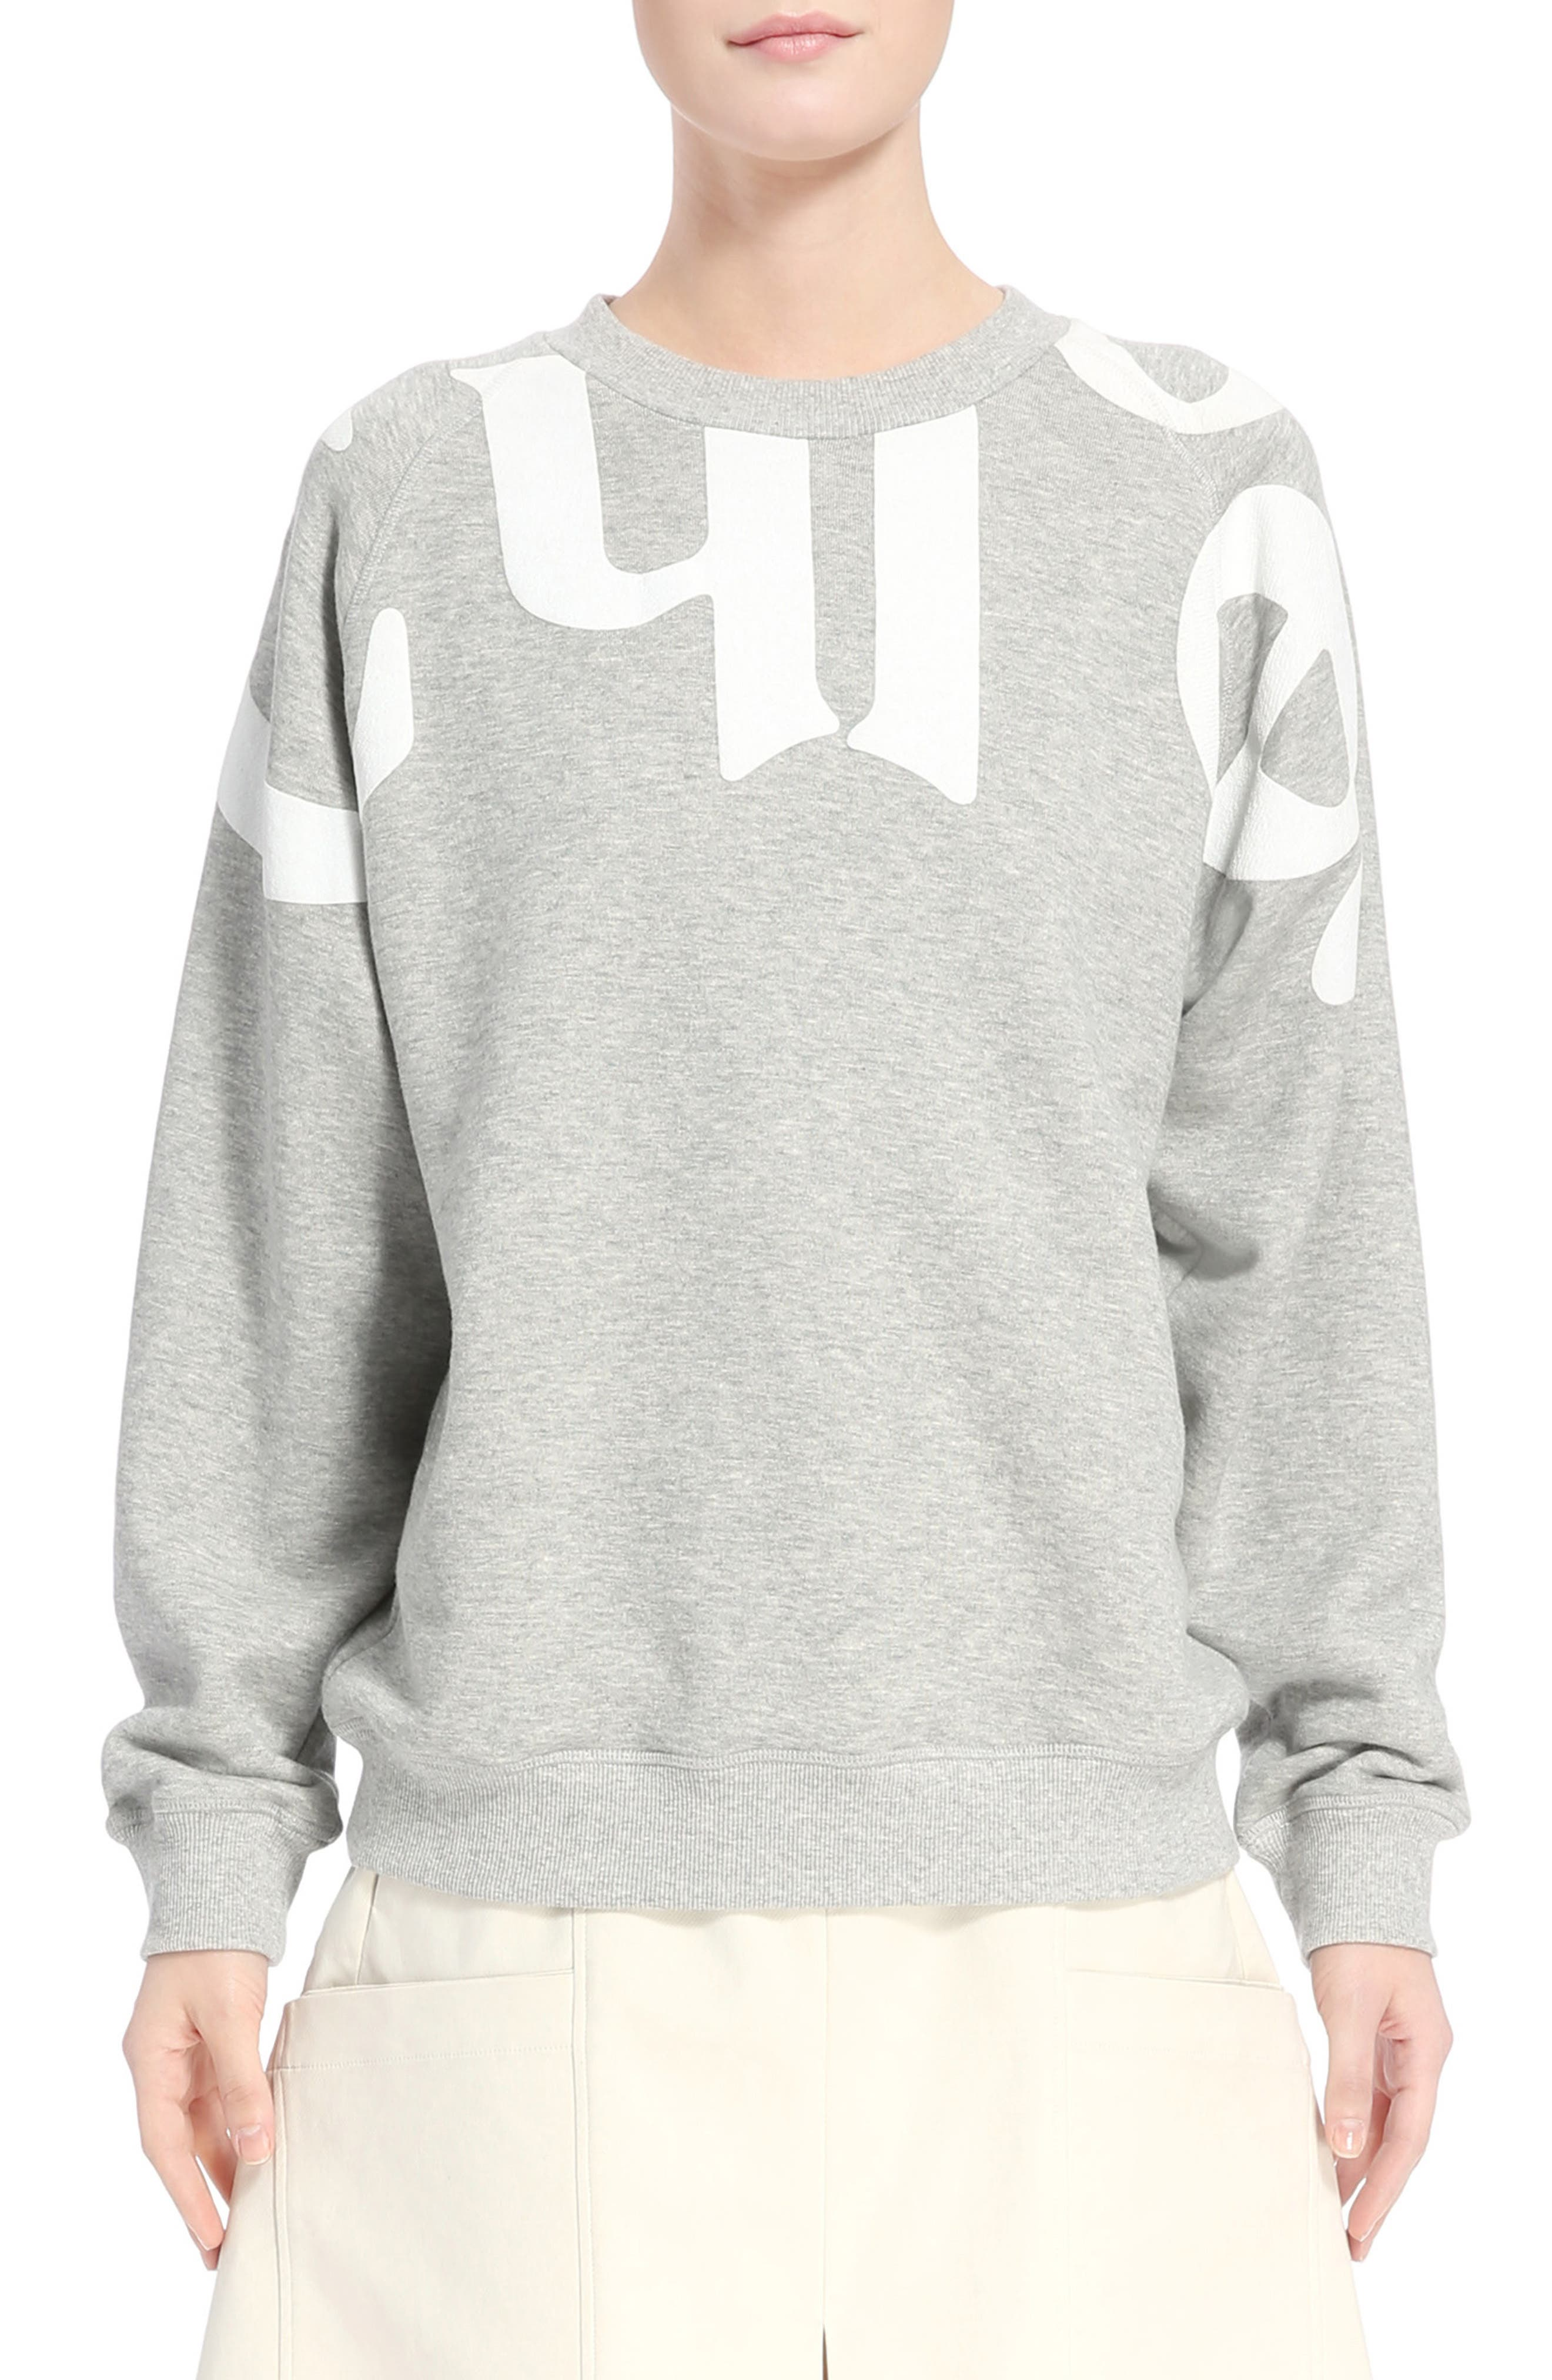 Logo Sweatshirt,                             Main thumbnail 1, color,                             030